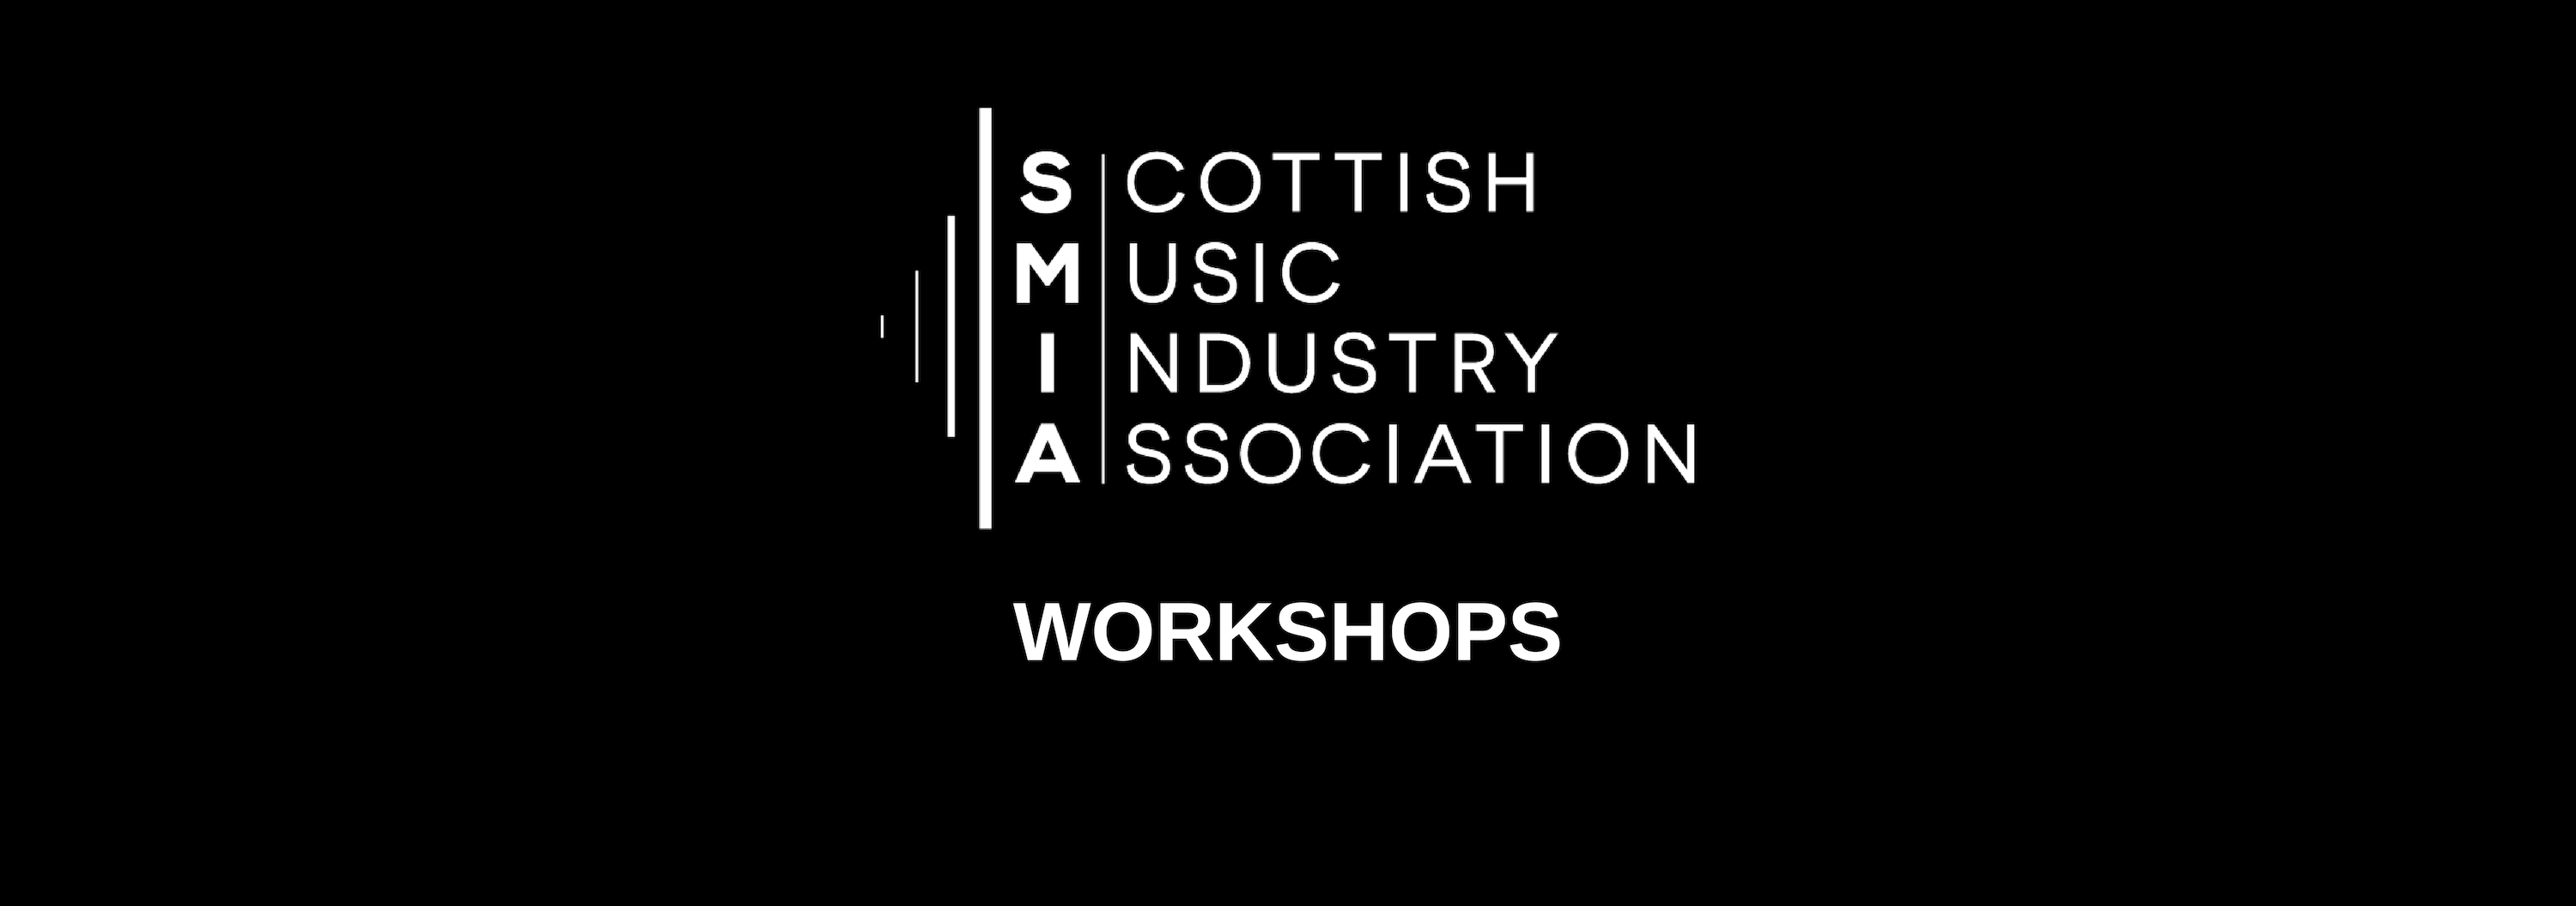 SMIA Workshops: Funding Your Music Business